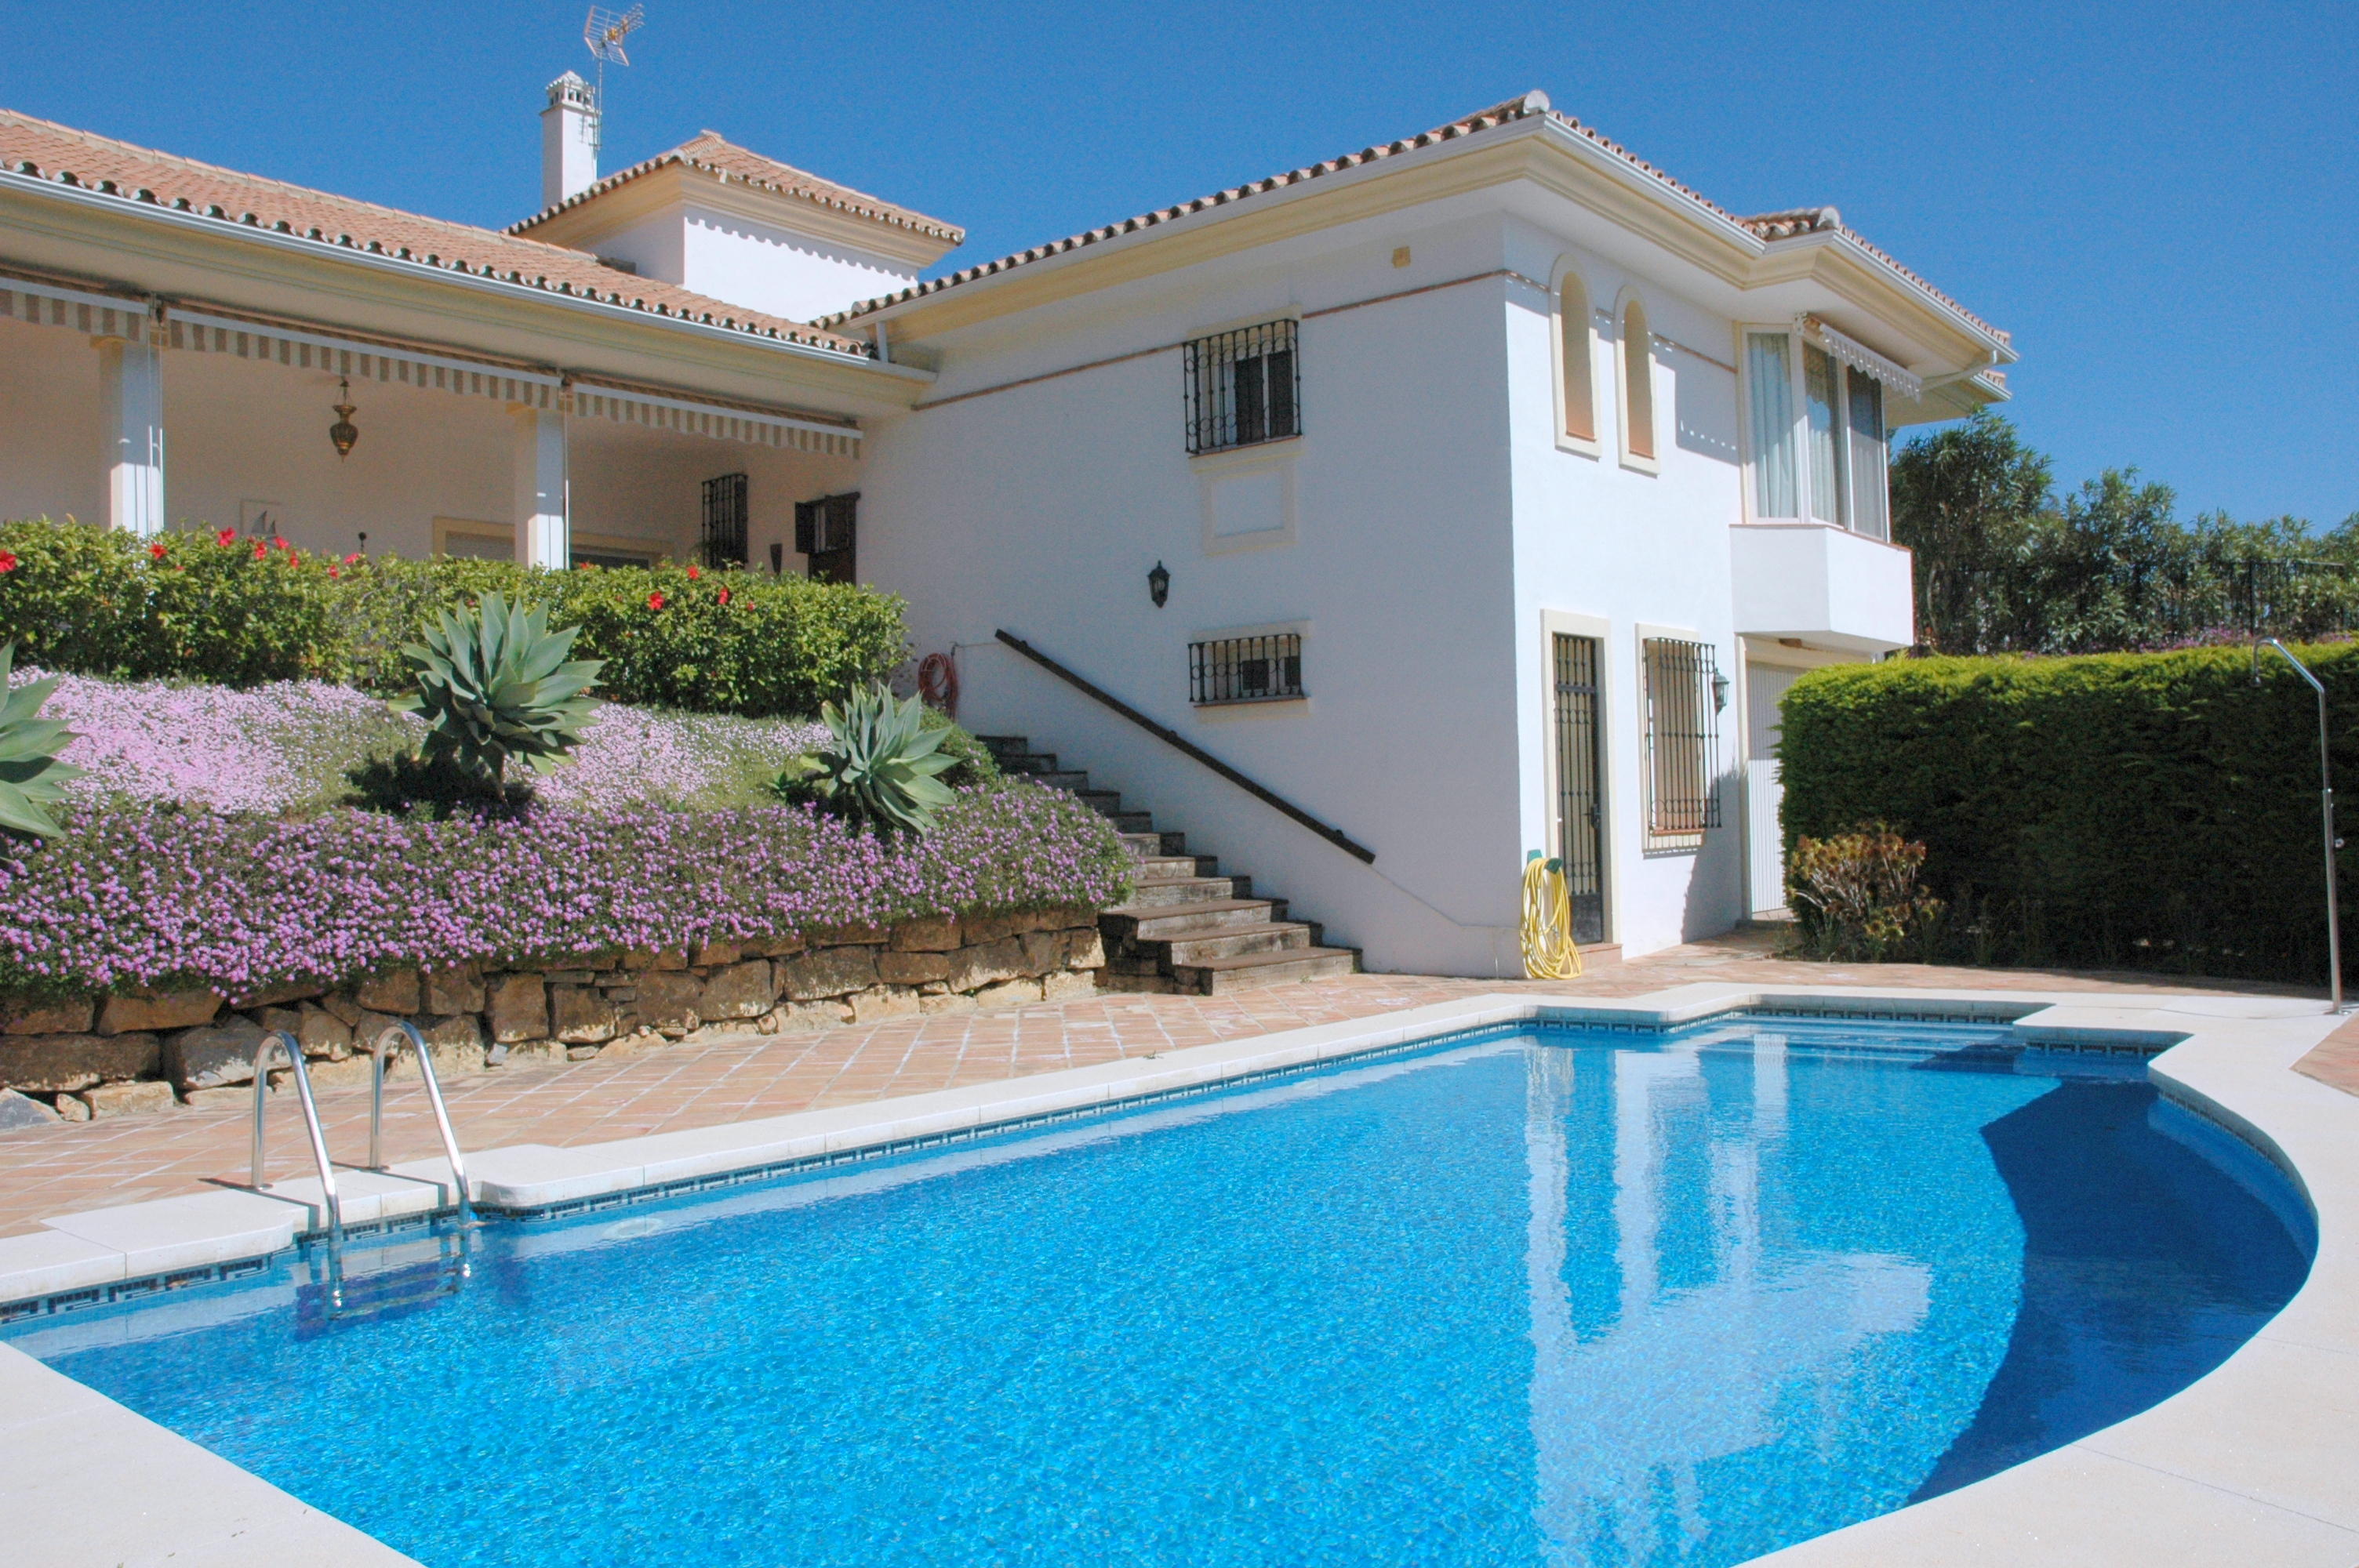 Affordable Sales Amp Rentals On The Costa Del Solcheap